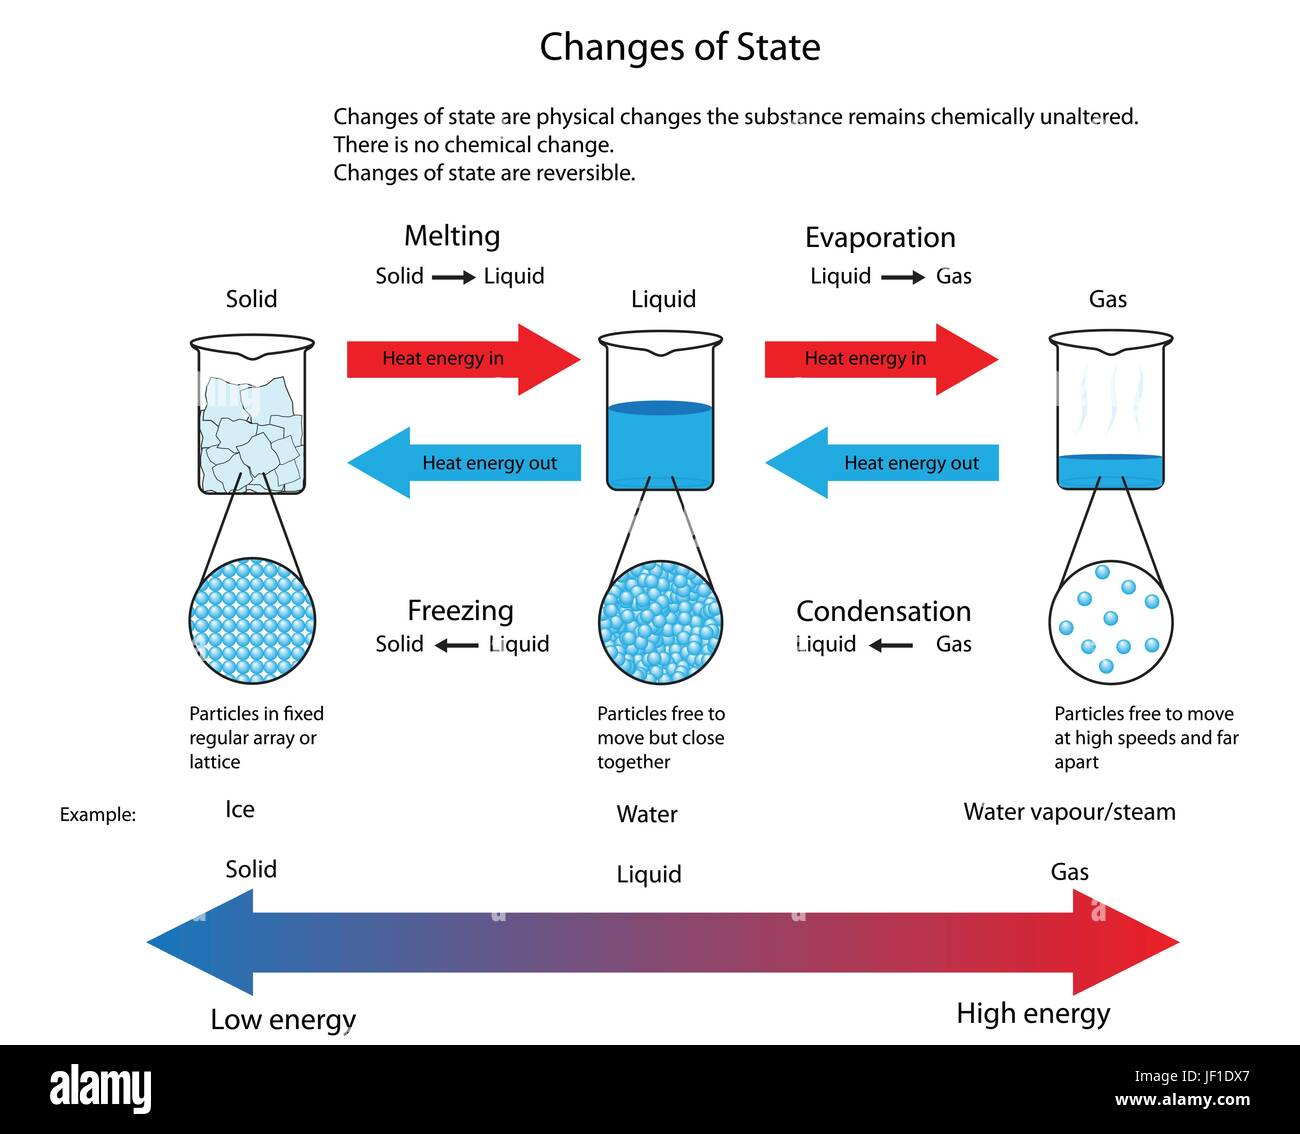 Diagram Illustrating The Physical Changes Of State From